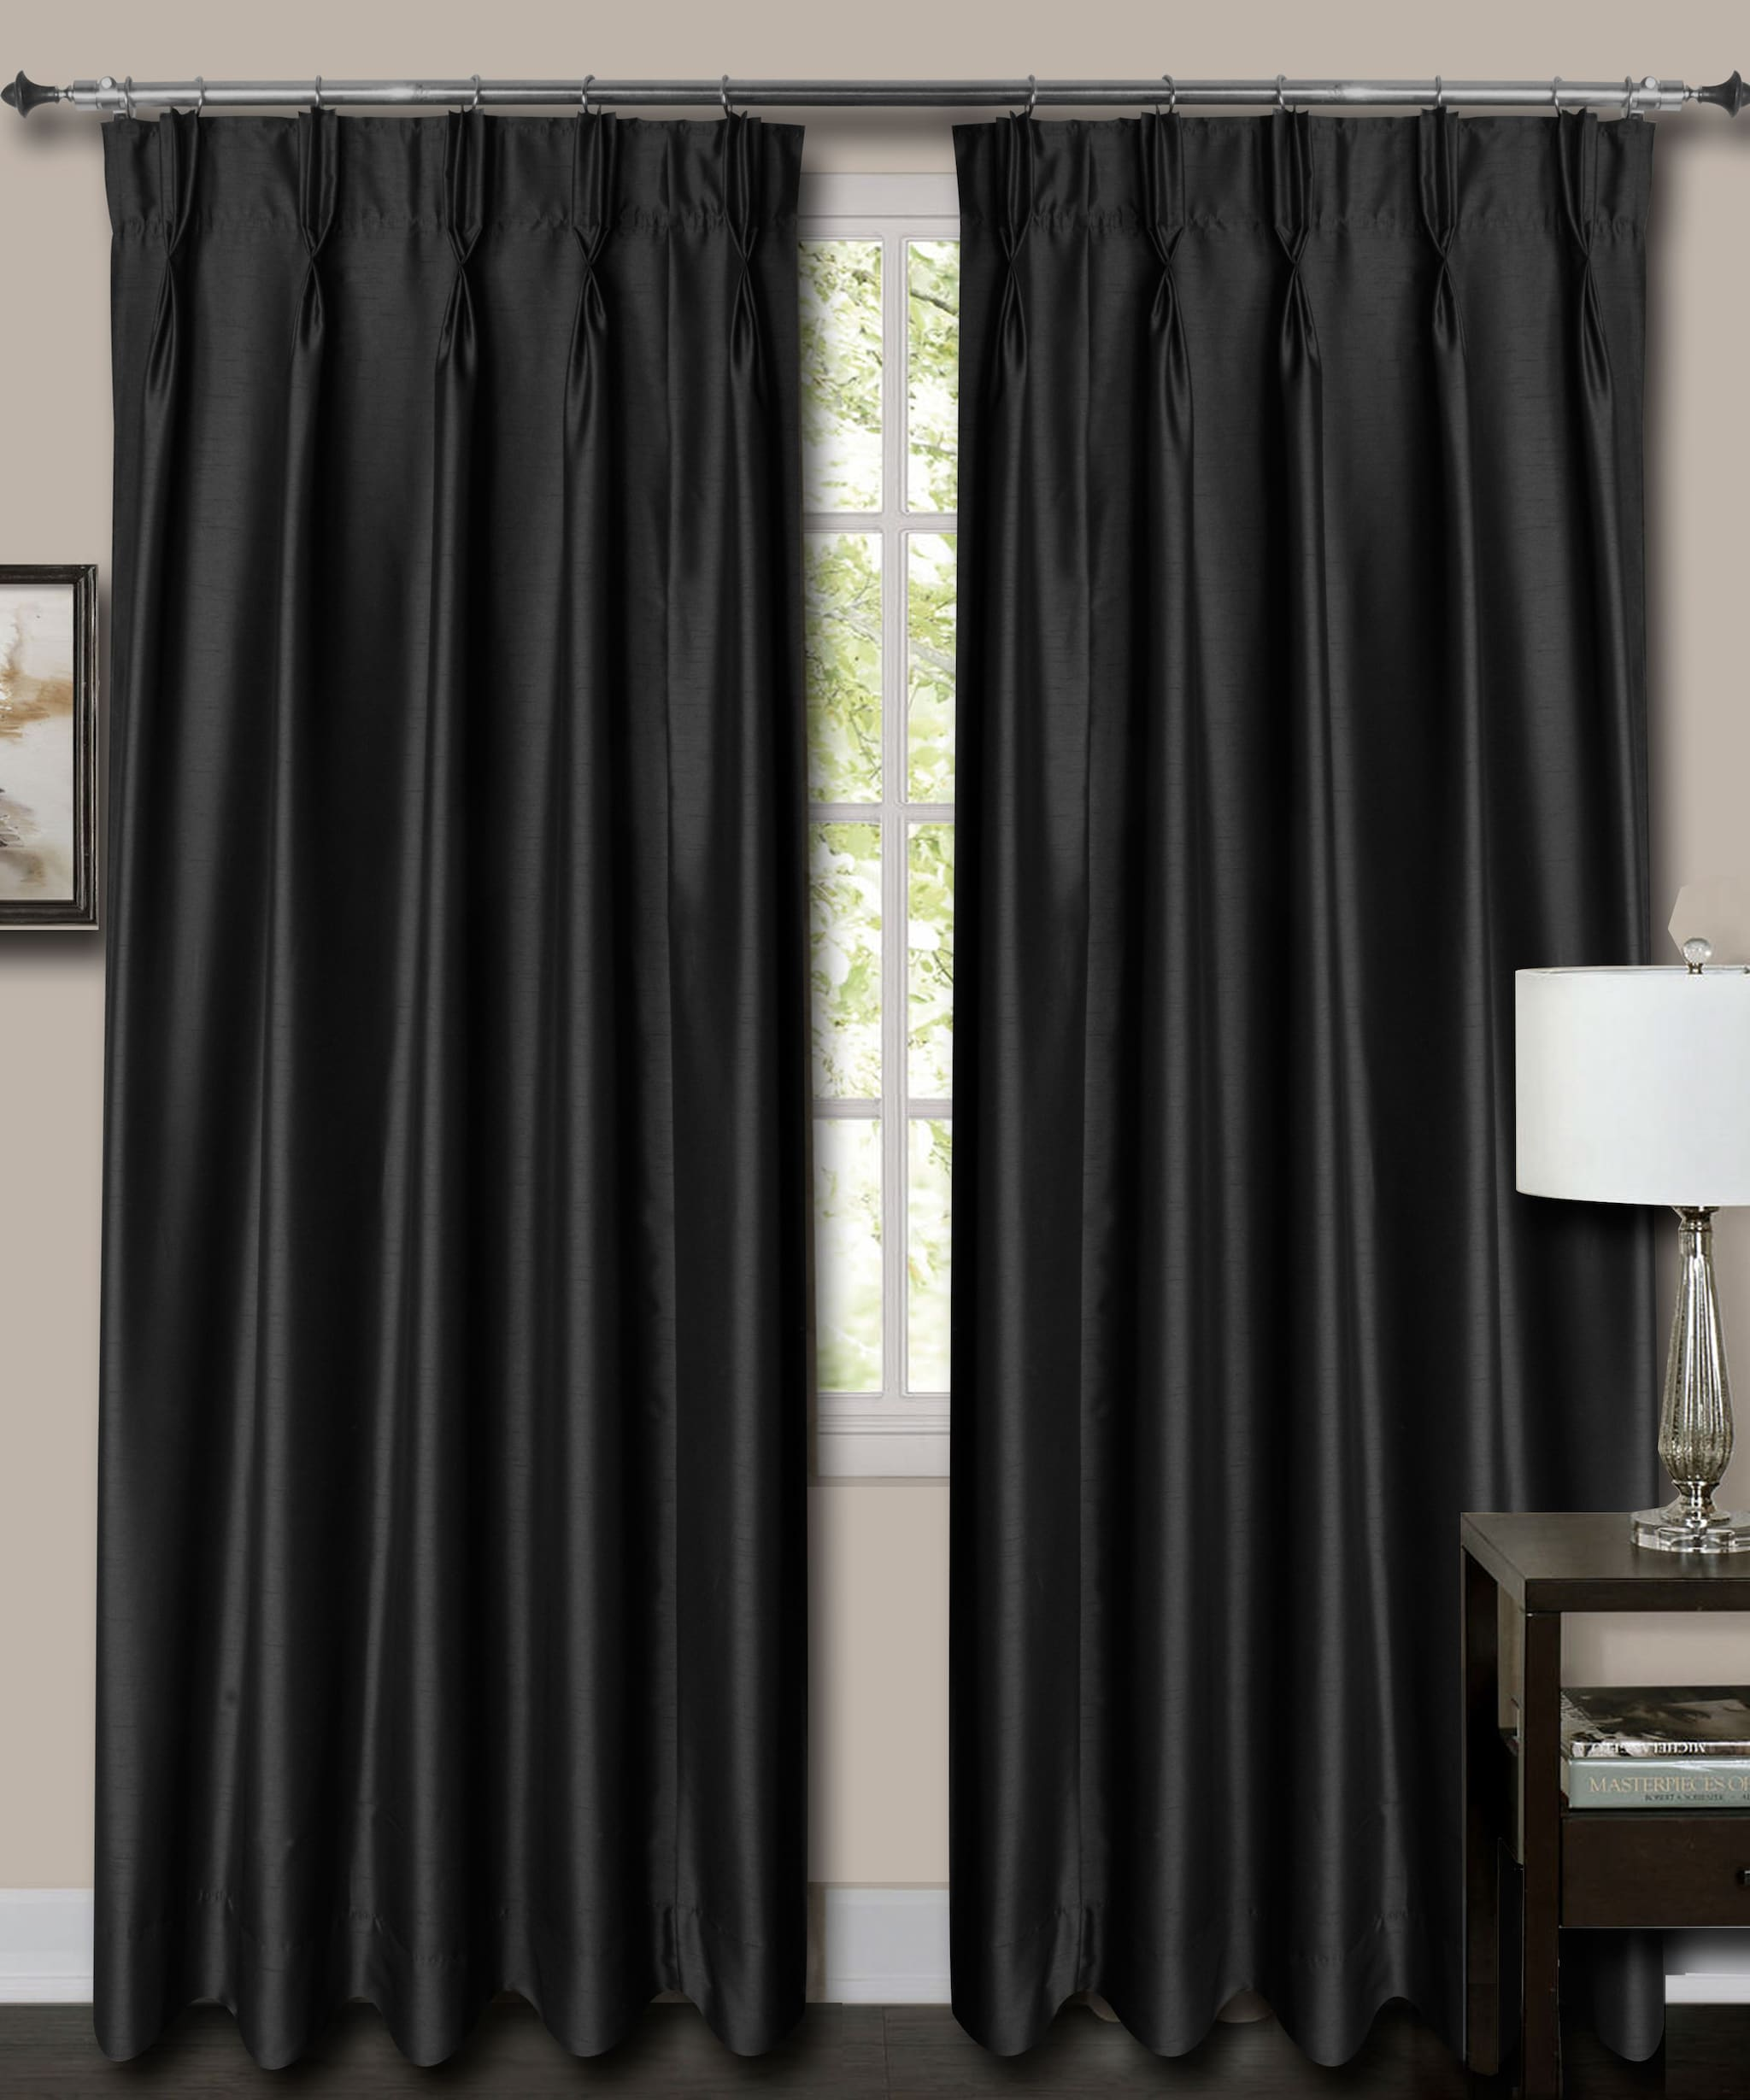 "French Pleat Top Black Faux Silk Dupioni Curtains. (39"" Wide,9 Feet Long,Thick Lining)"